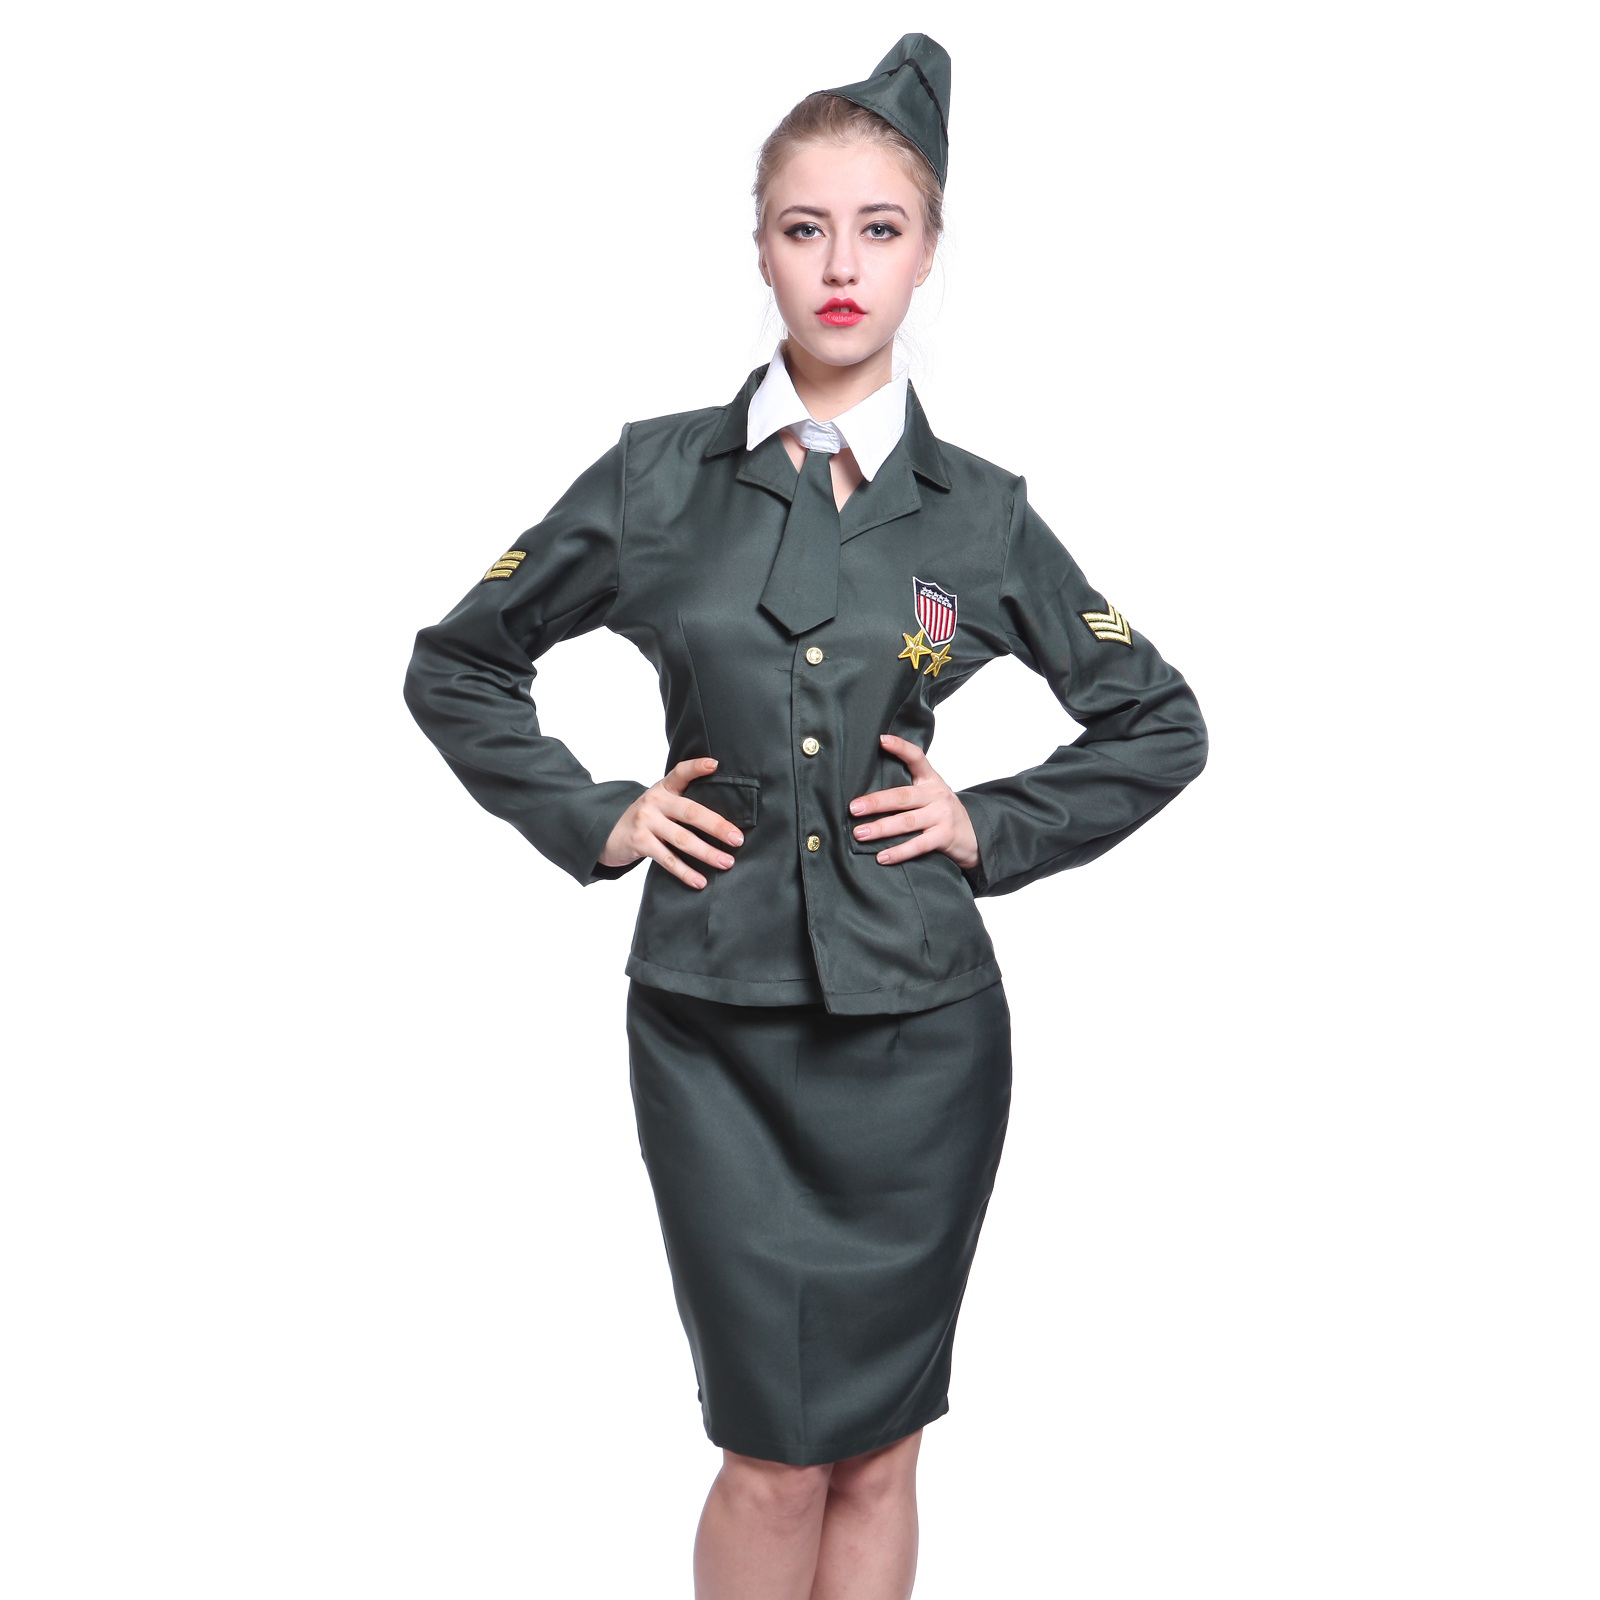 army girl milit r sexy damen kost m armee fun club halloweenkost m halloween ebay. Black Bedroom Furniture Sets. Home Design Ideas